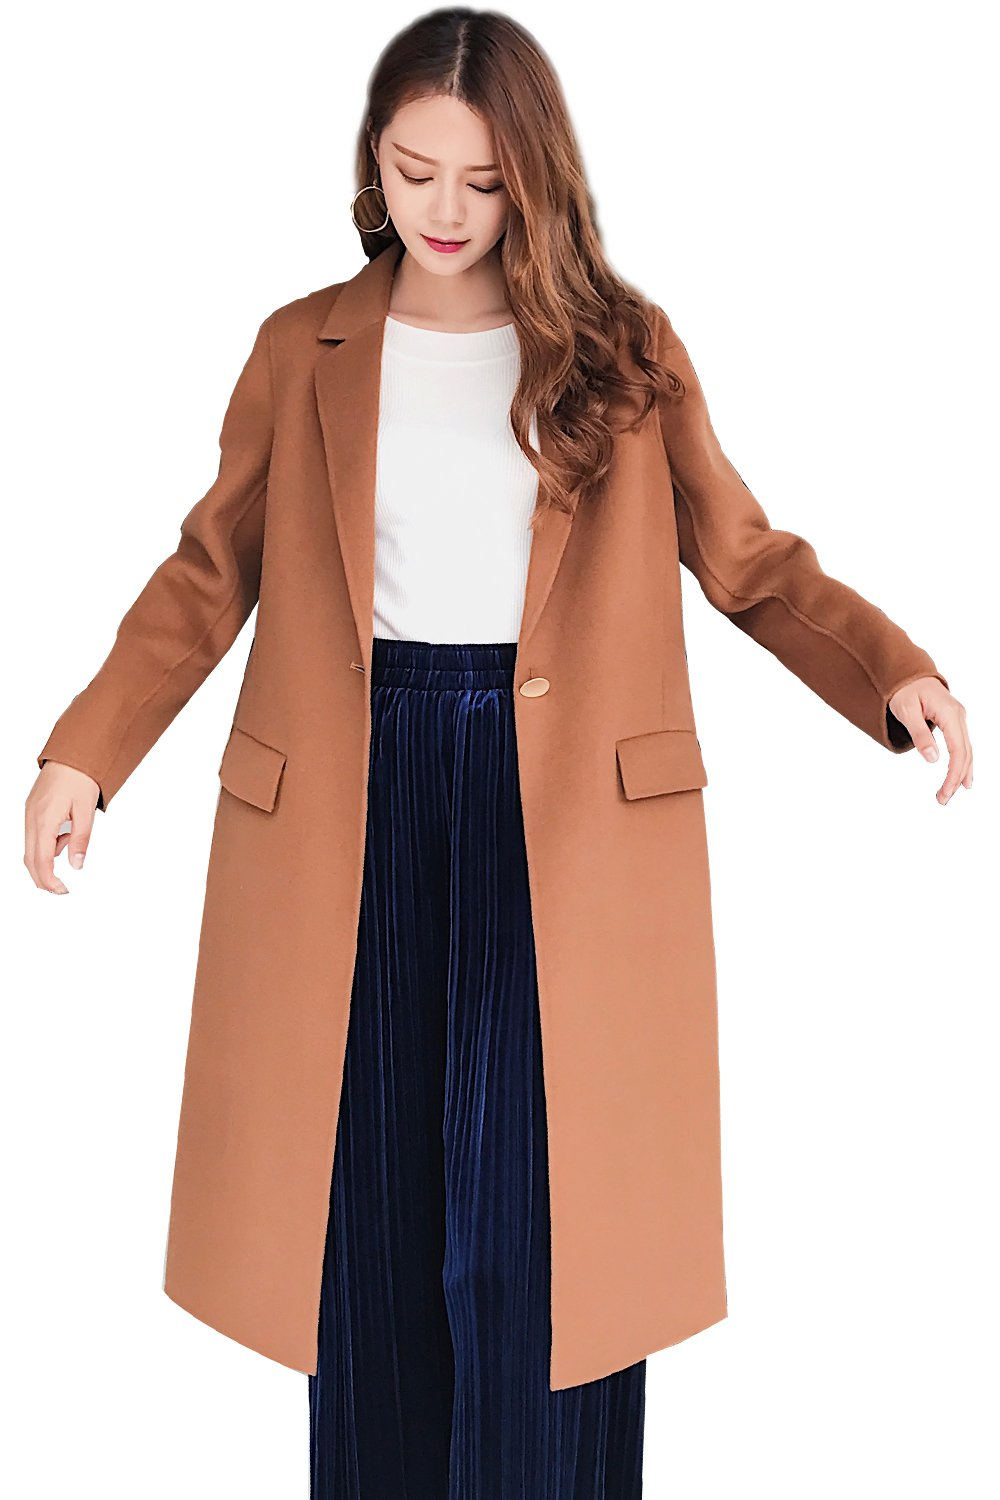 CG Autumn Clothes for Women Wool Coat of Double Sided Wool Classic Camel Fashionable Clothes G0023 (L, Classic Camel)